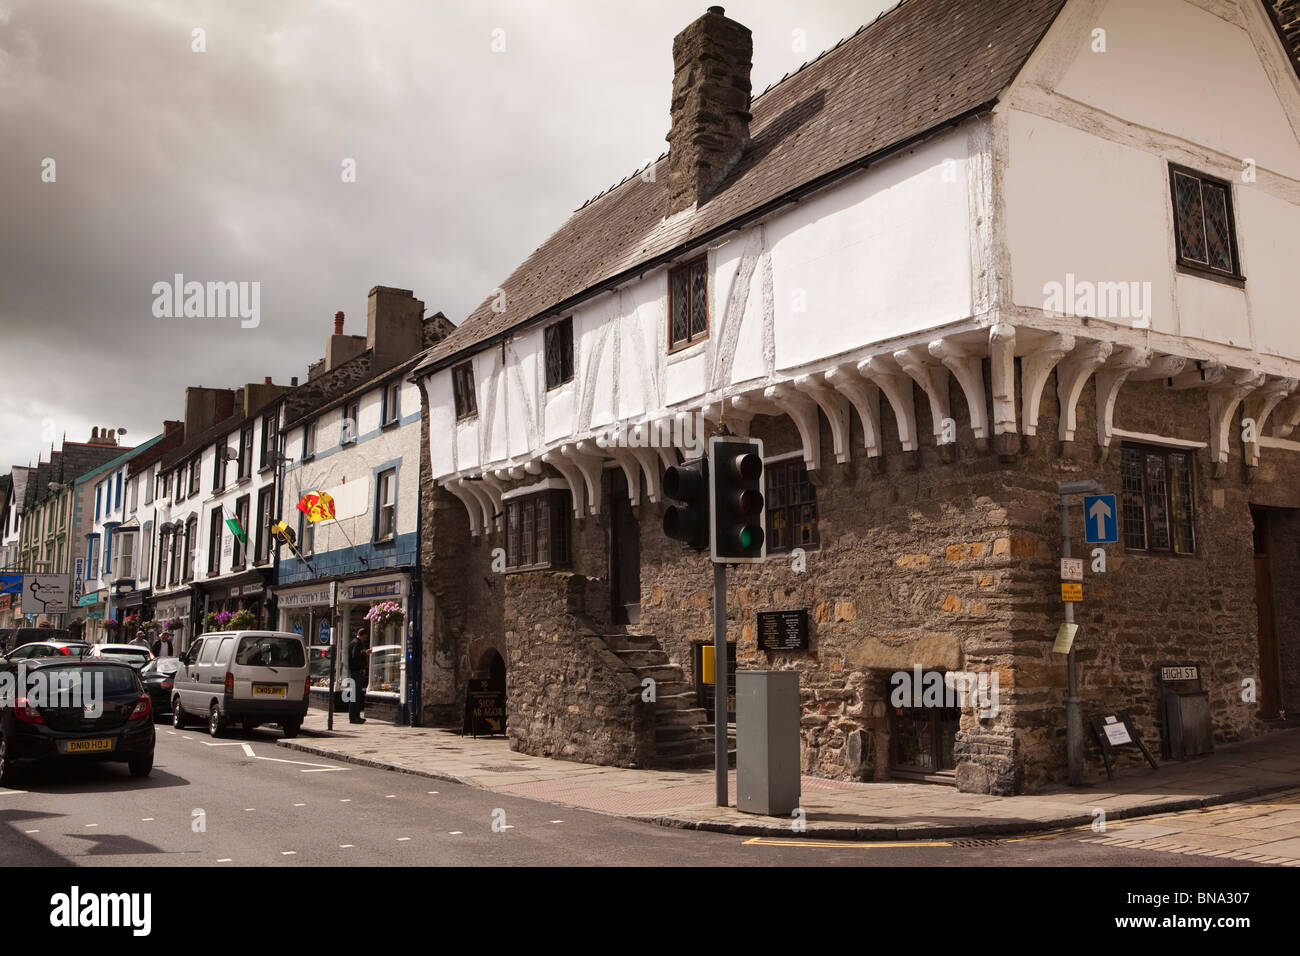 Wales, Gwynedd, Conway, Castle Street, Aberconwy House, 14th Century merchant's house (NT) - Stock Image